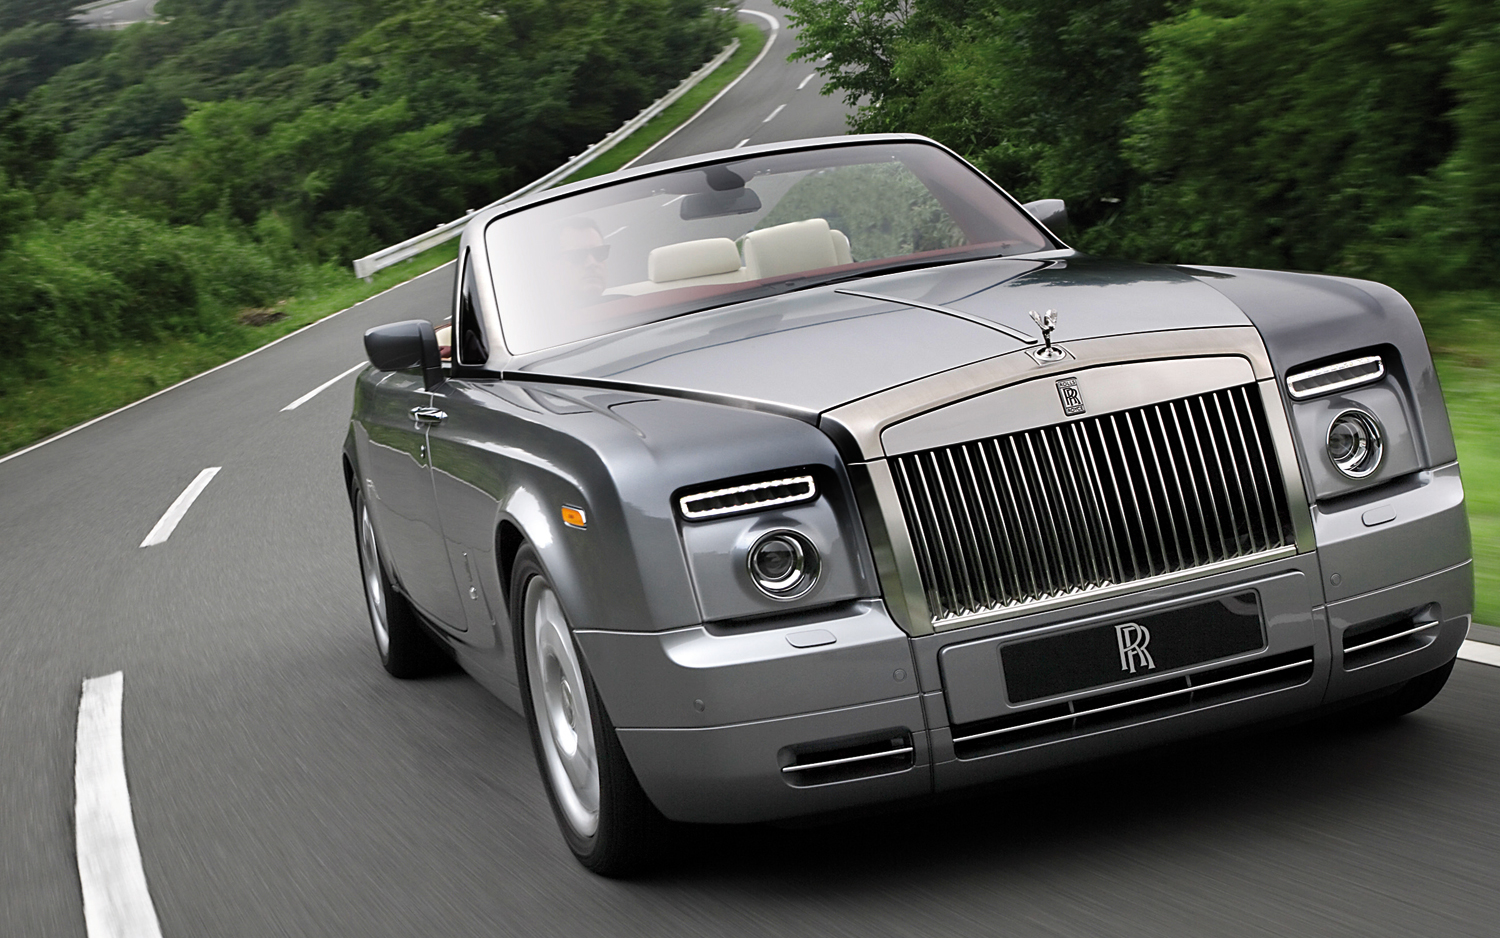 2014 Rolls royce Phantom Drophead Coupe #19